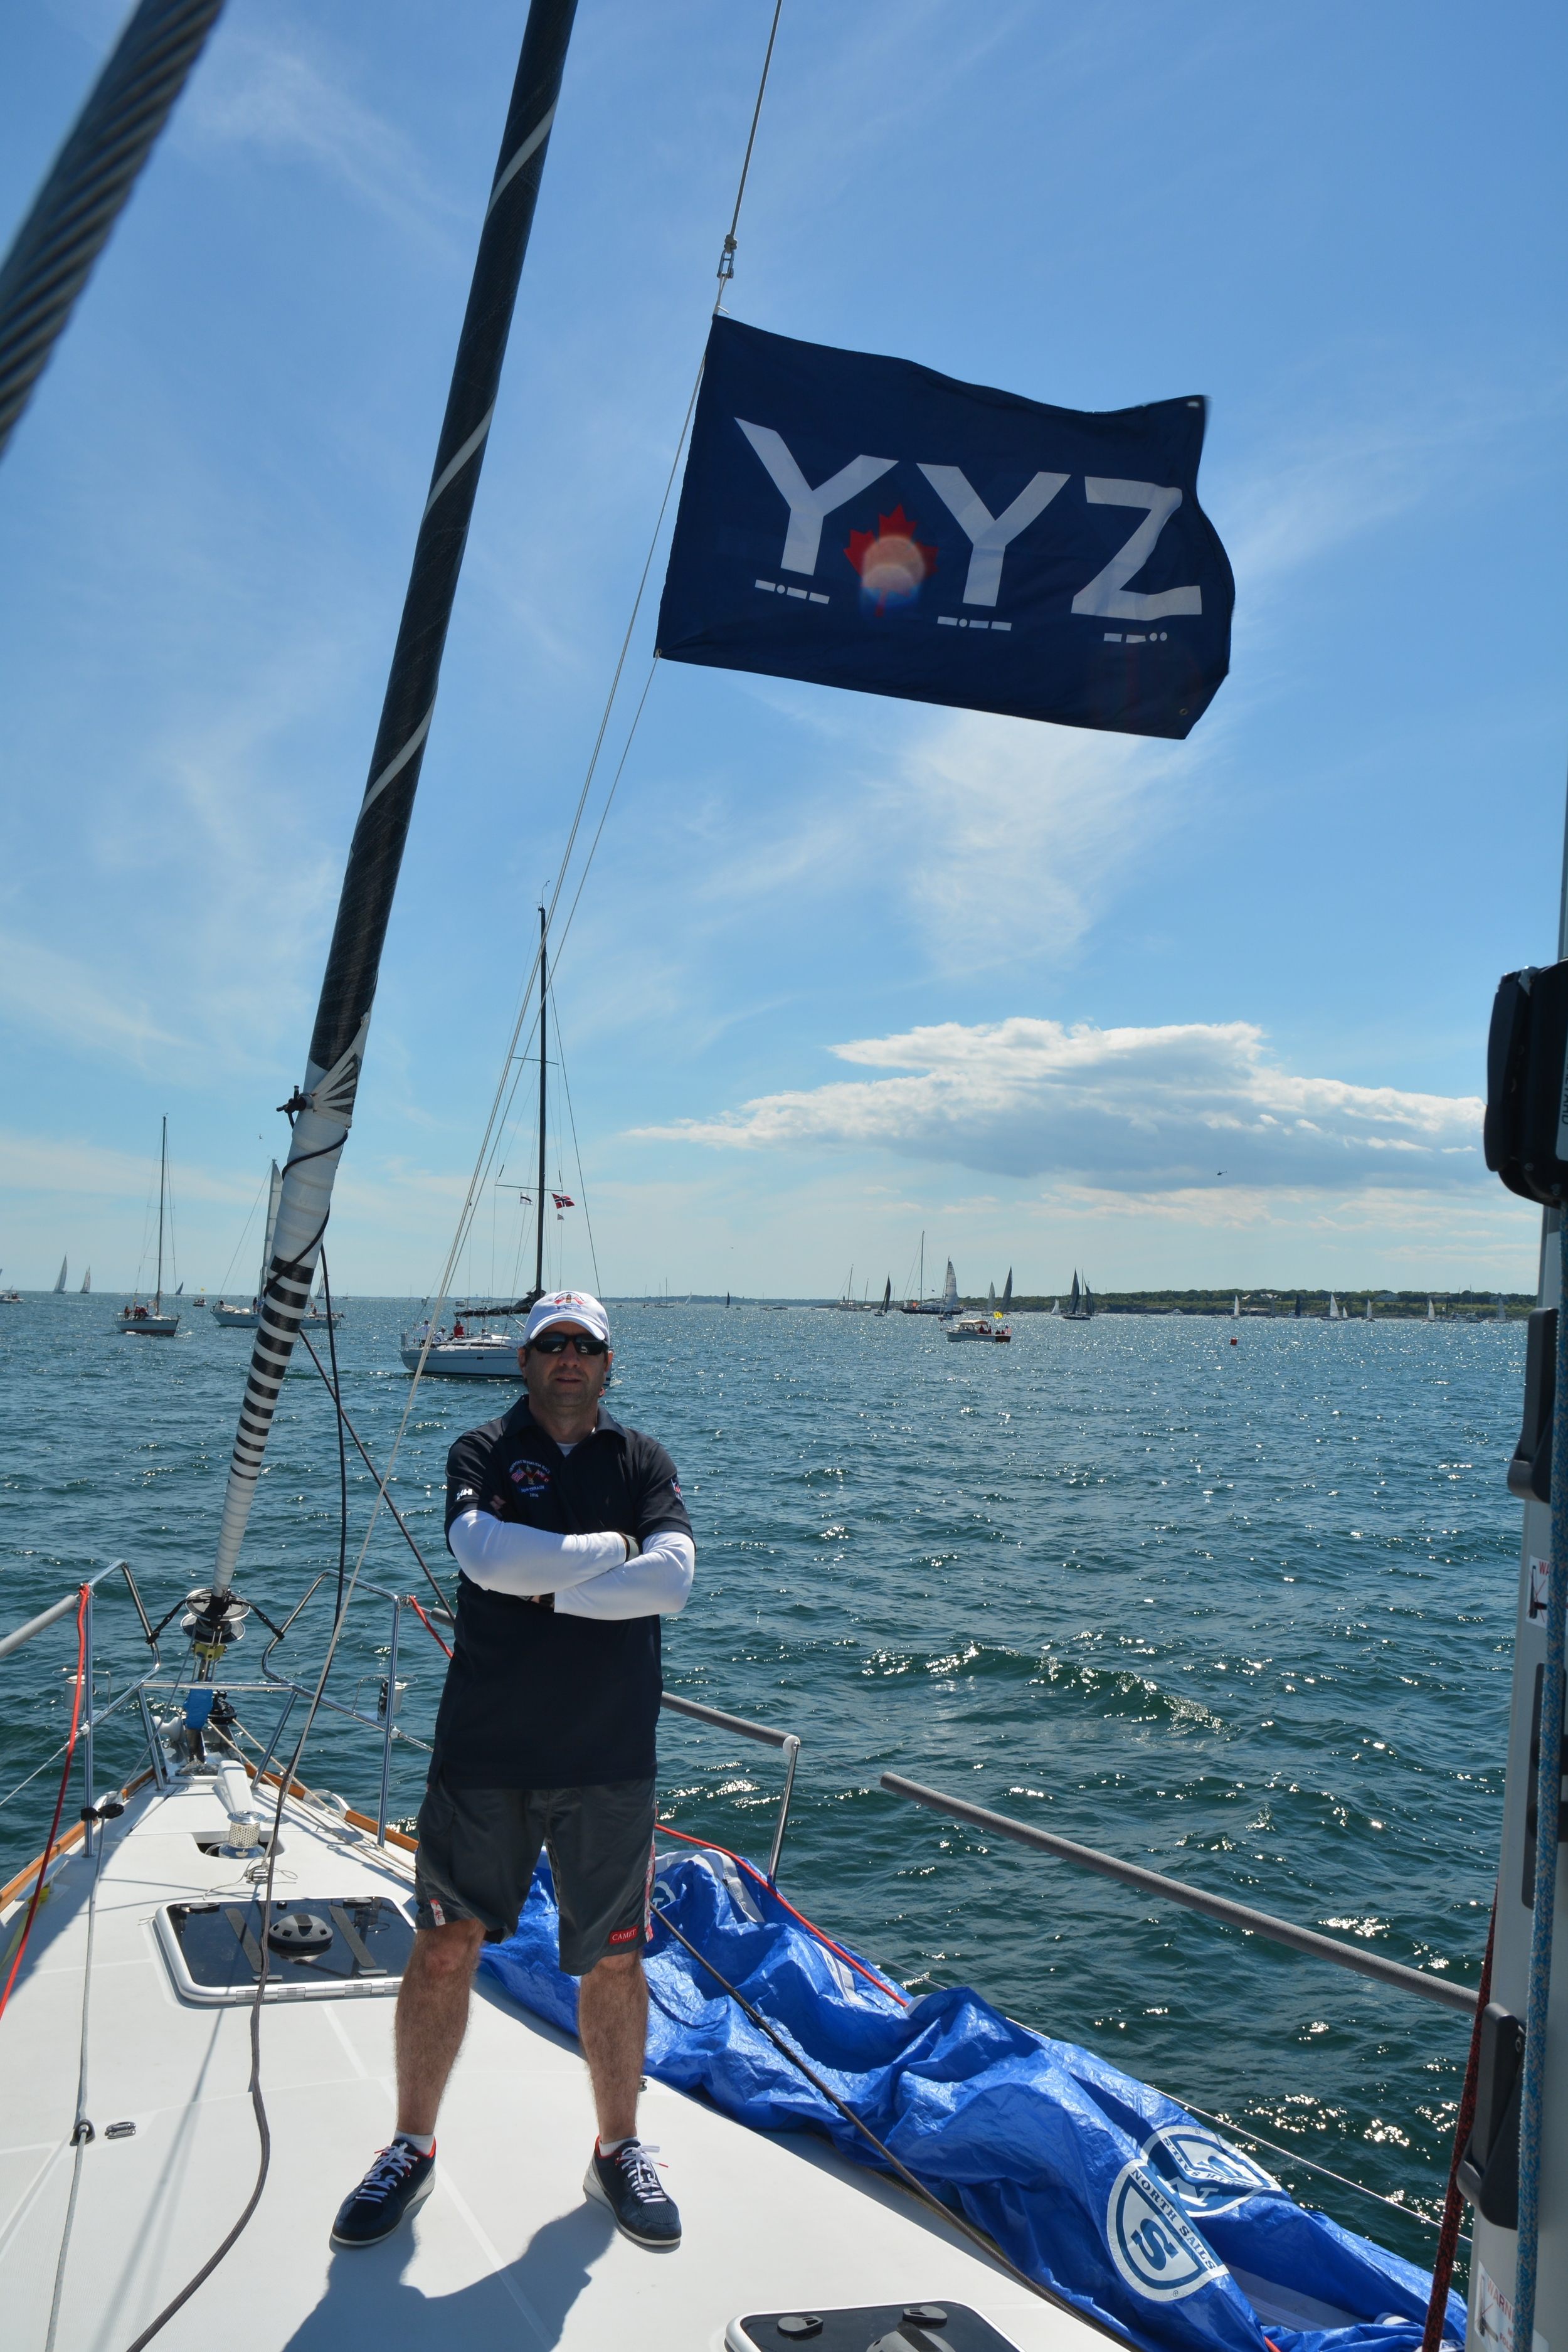 Bowman Derek Joynt standing under YYZ's battle flag at the start of the race